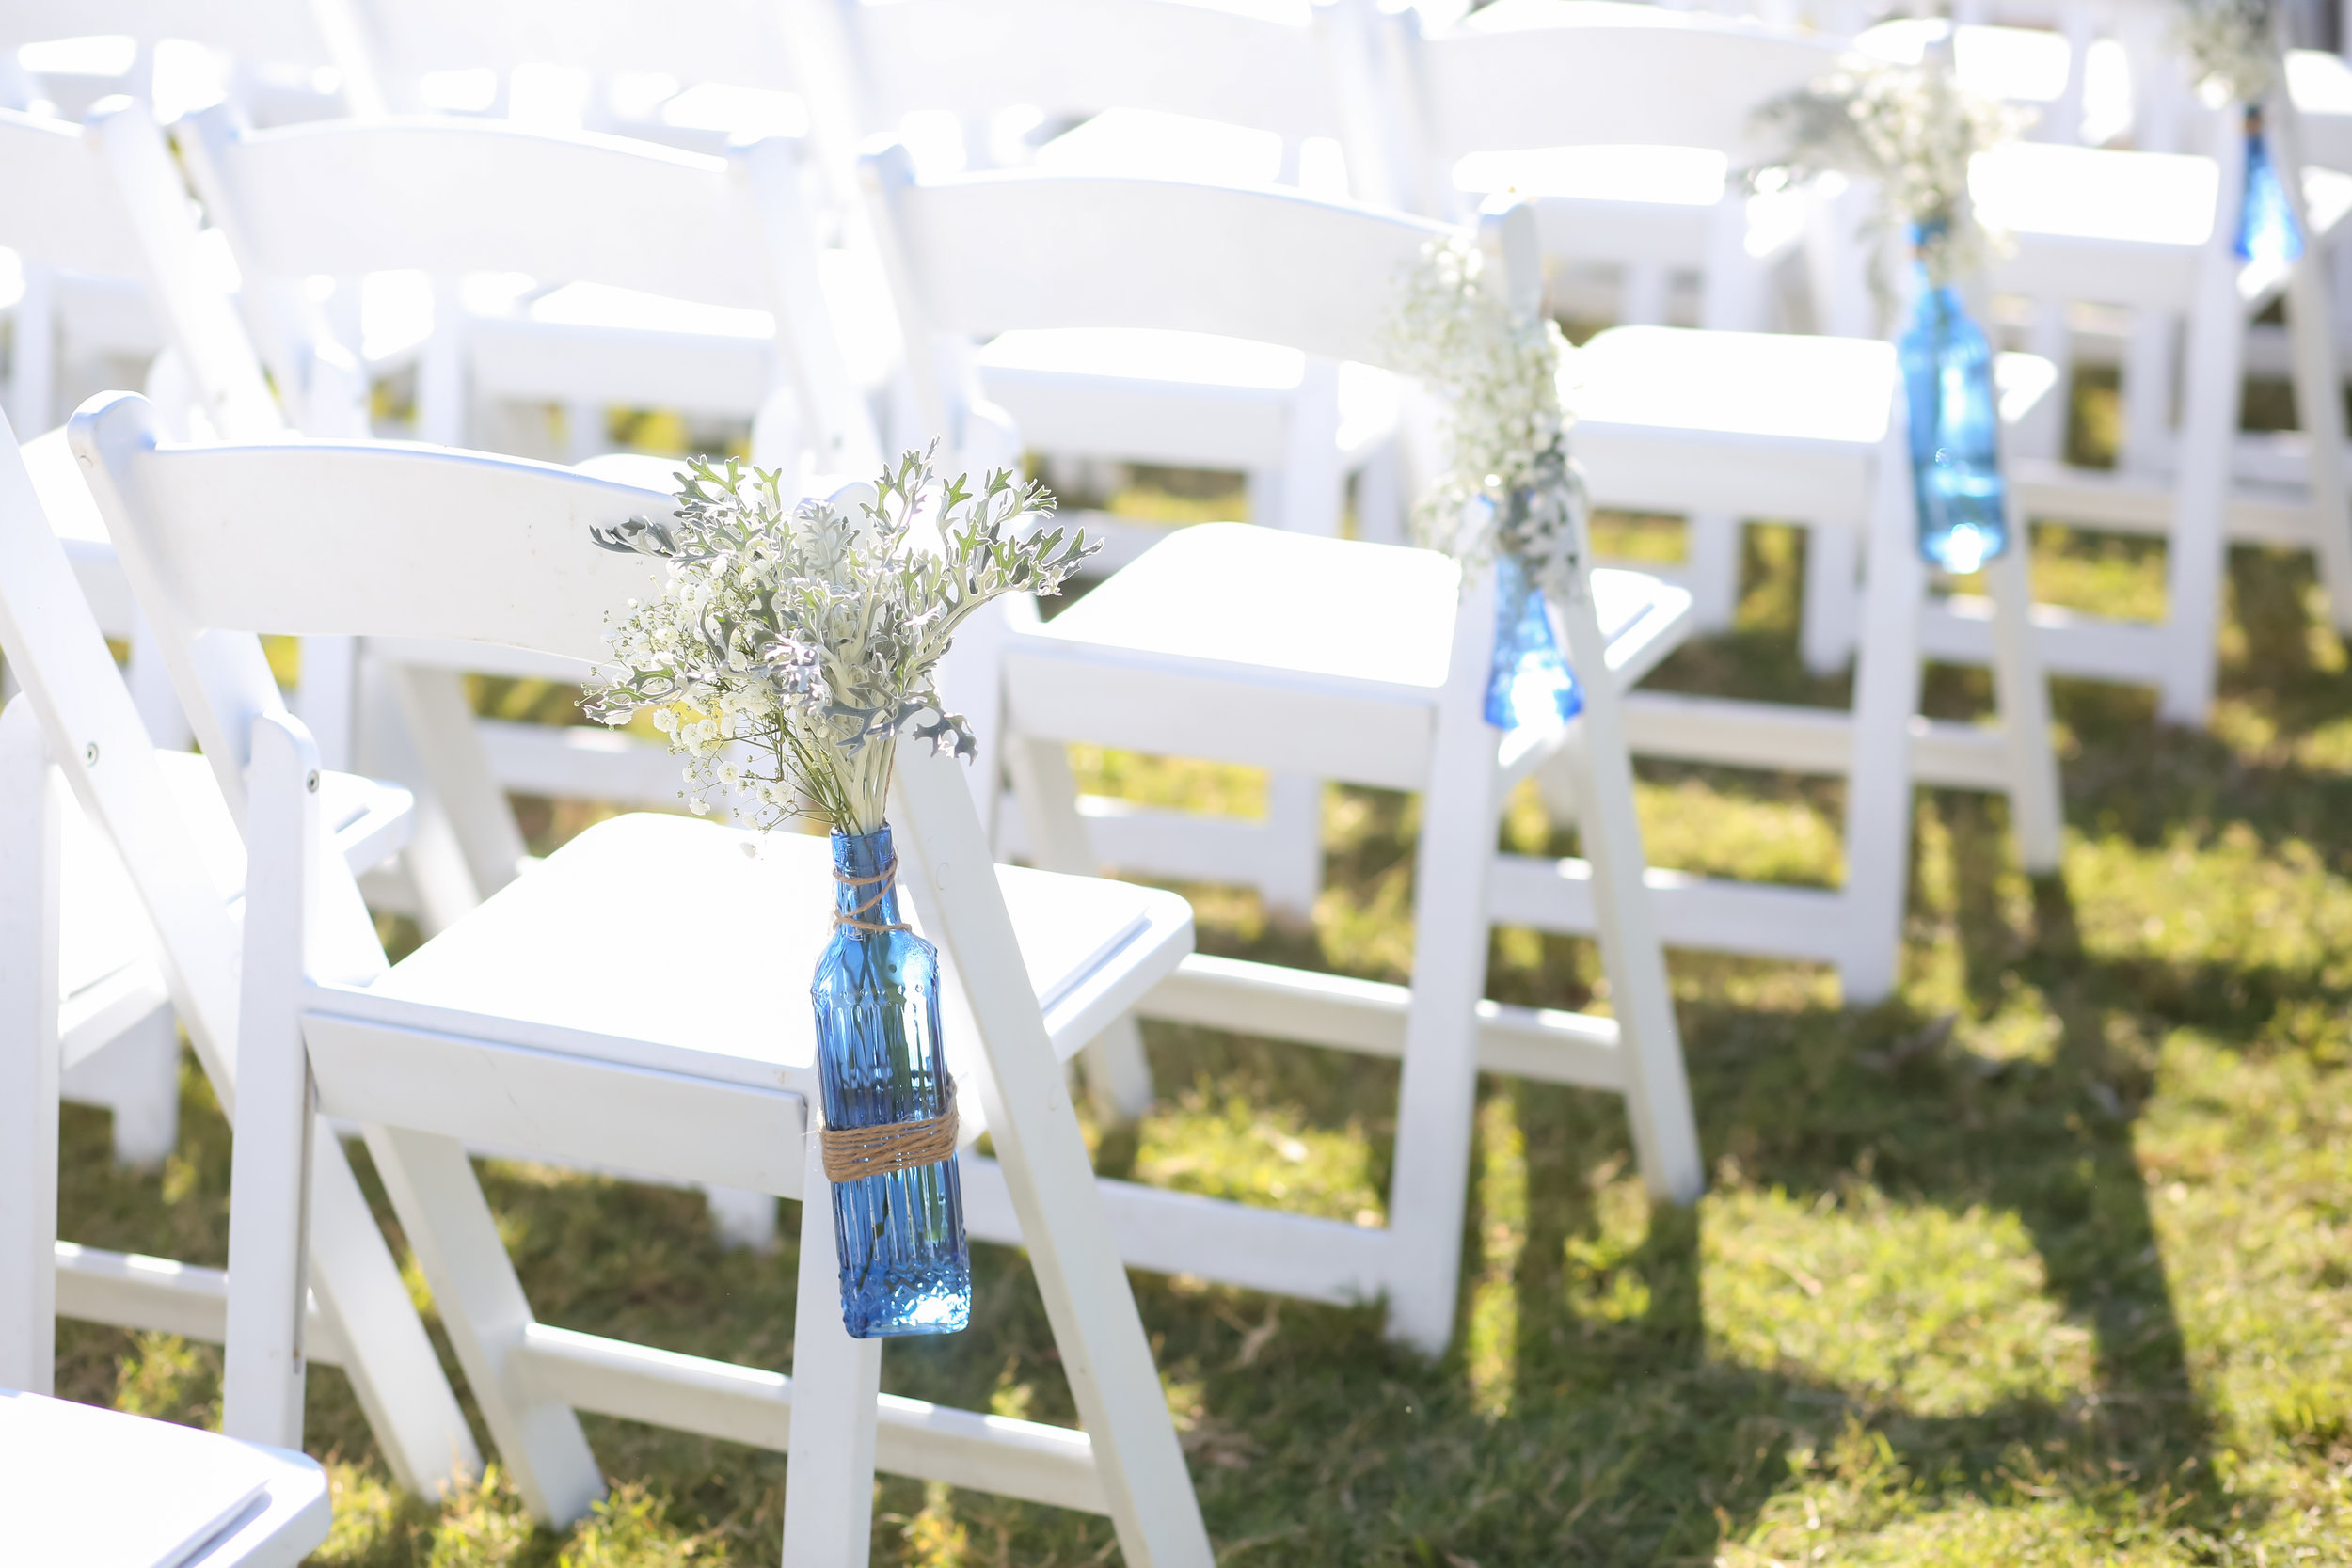 Watercolor blues and glass bottles added a nautical element to the decor.